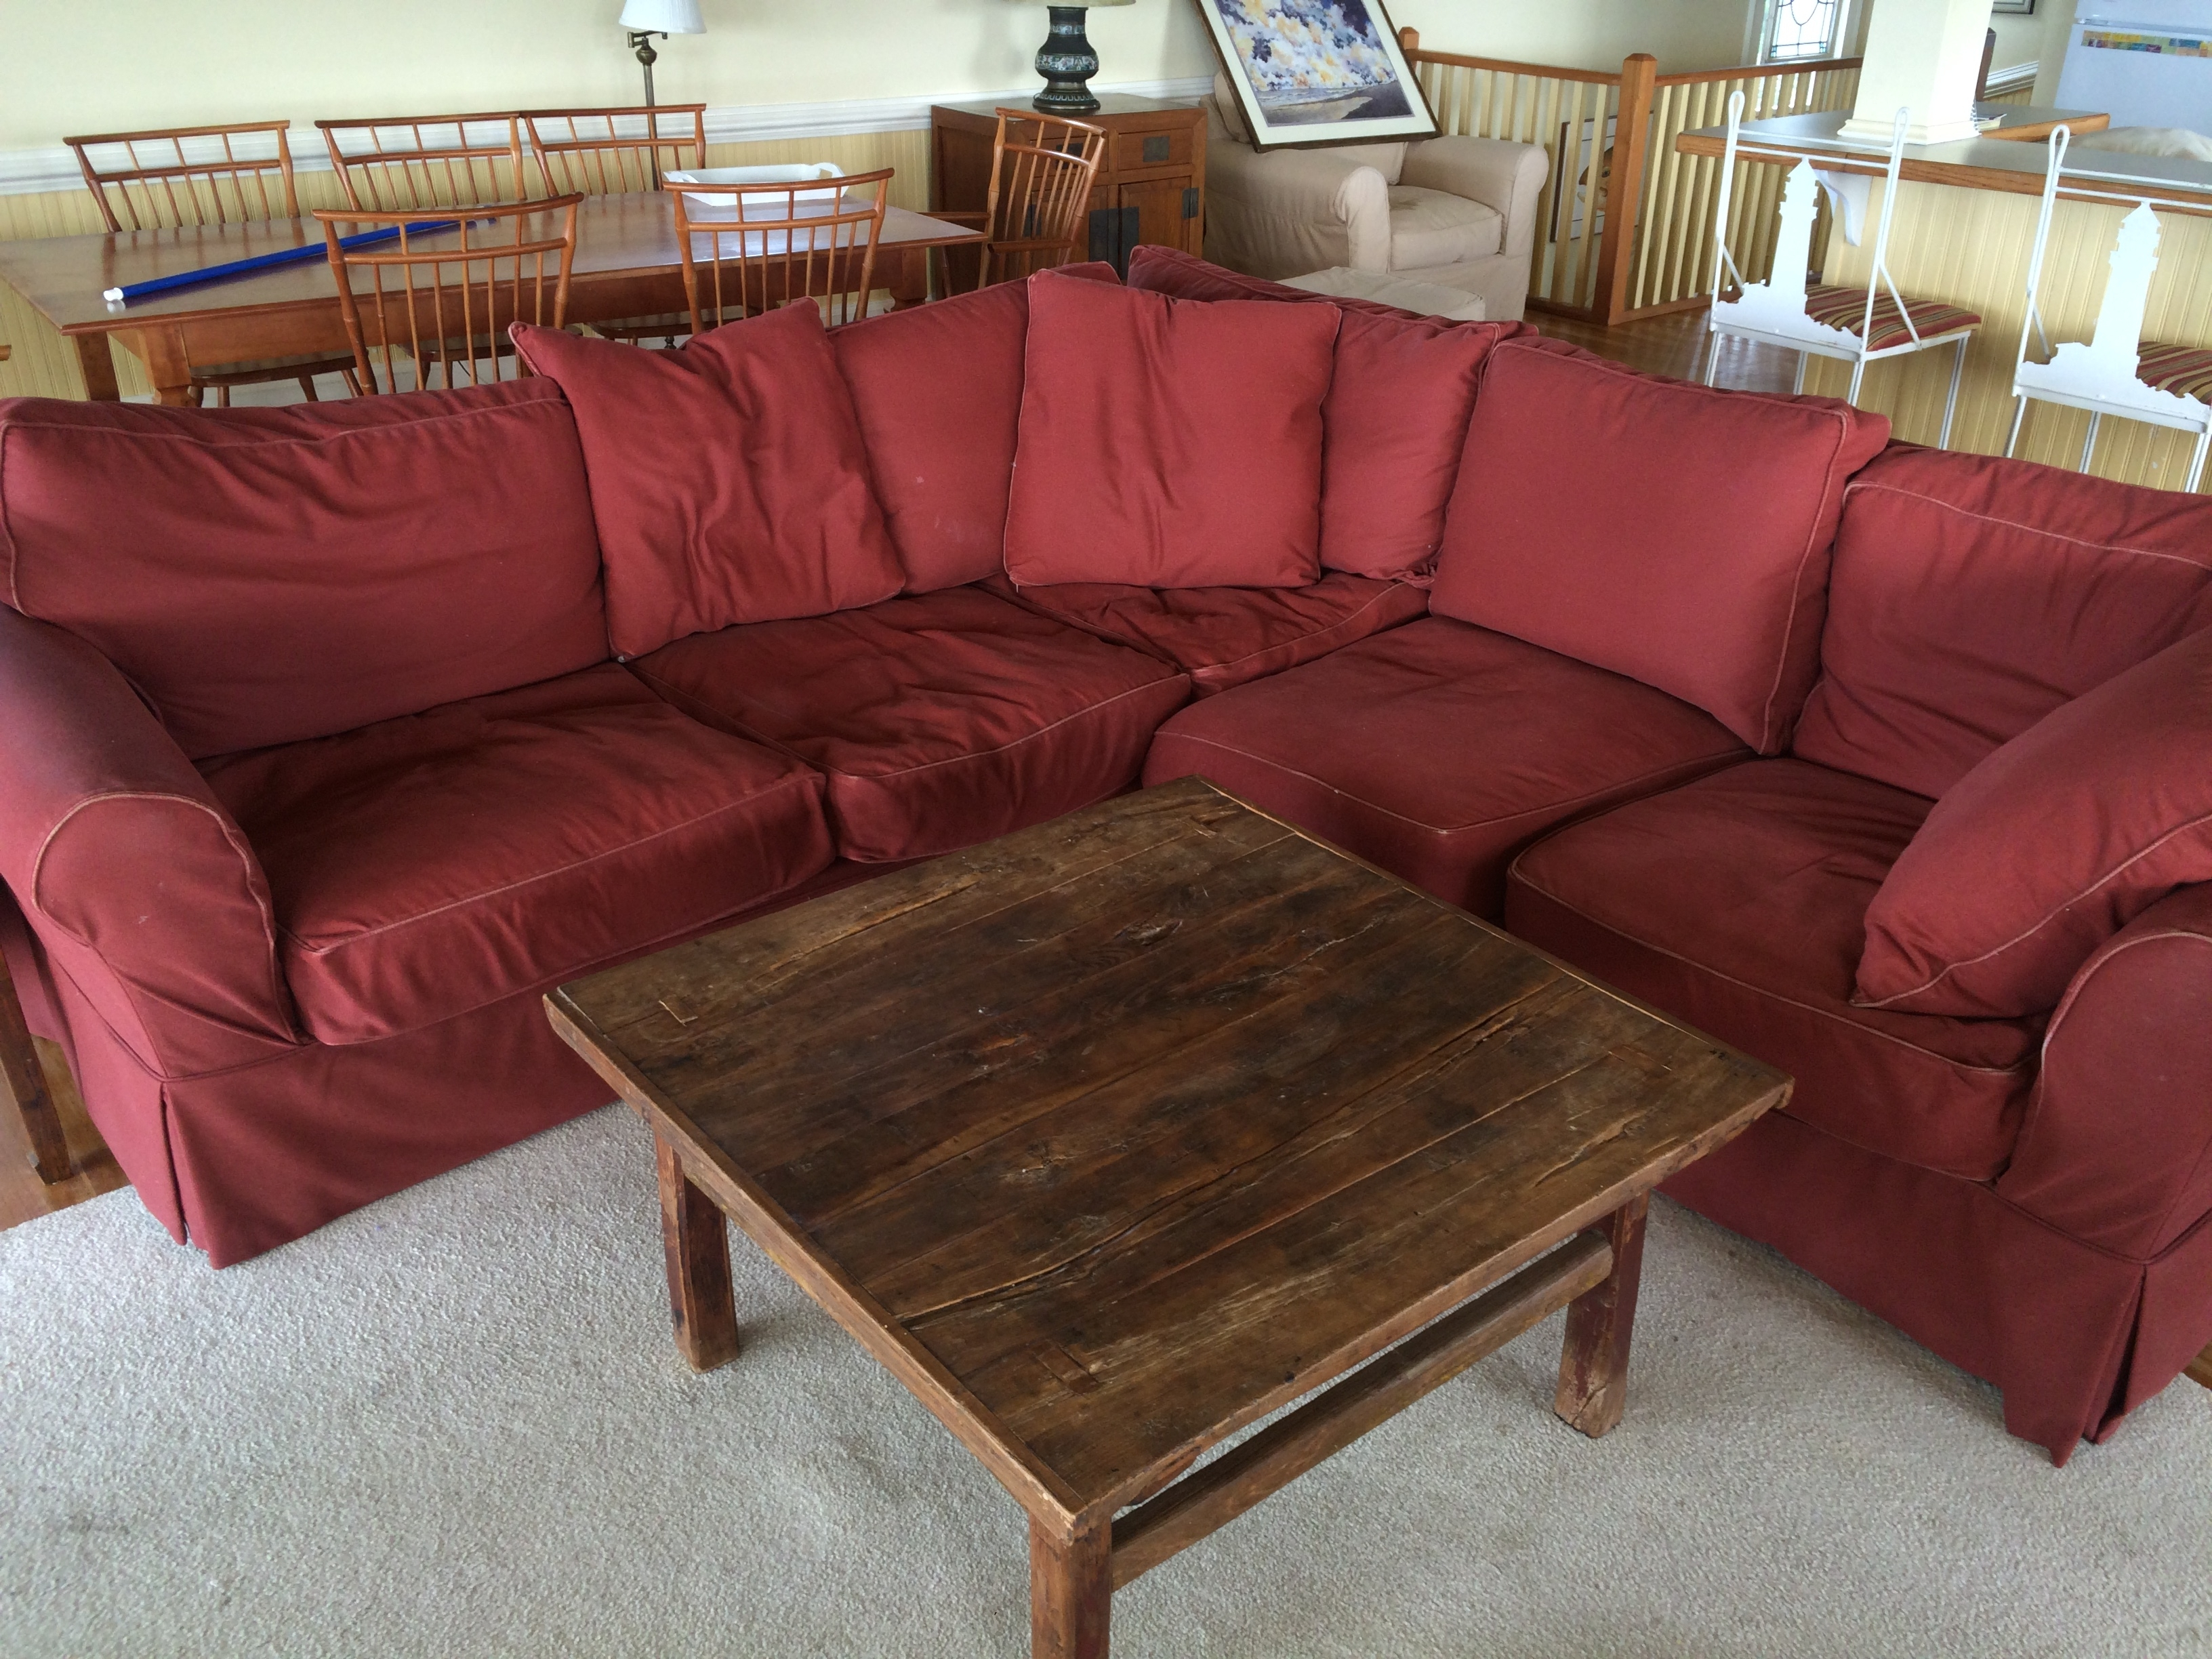 Recent Down Filled Sectional Sofas Inside Down Filled Sectional Sofa – Hotelsbacau (View 8 of 15)